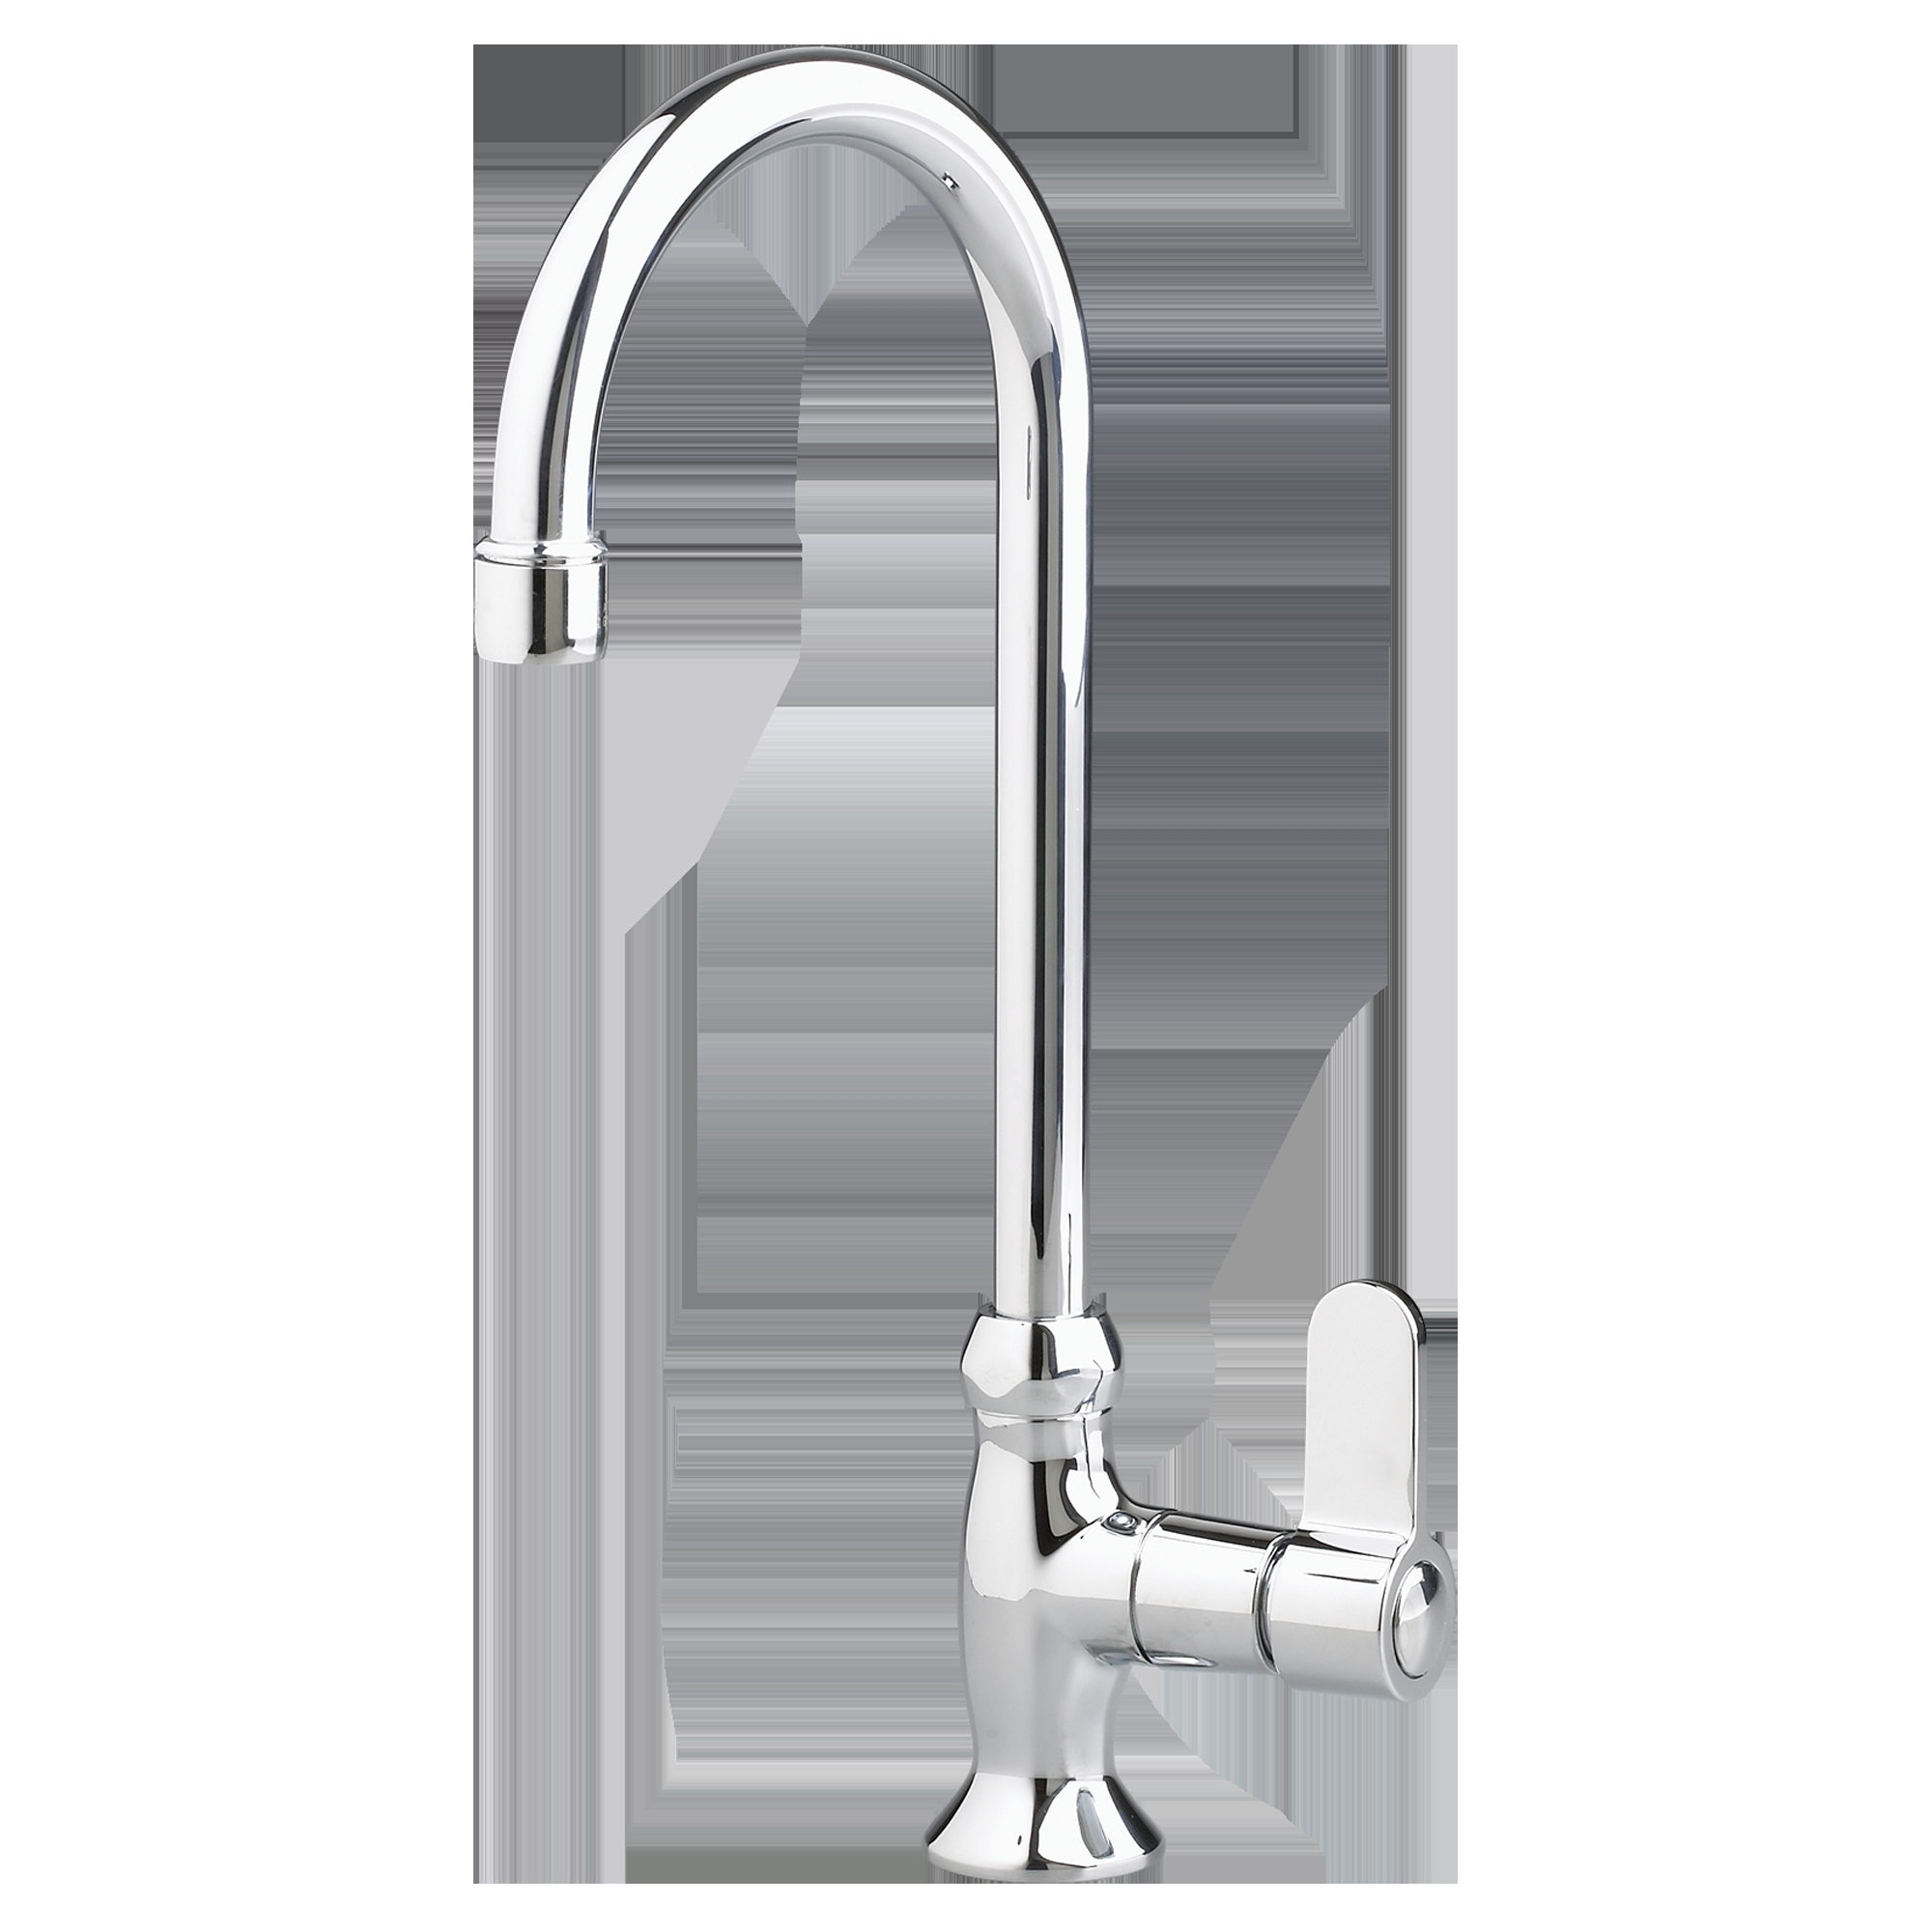 bar sink faucets single hole bar sink faucets single hole heritage single control gooseneck bar sink faucet american standard 2000 x 2000